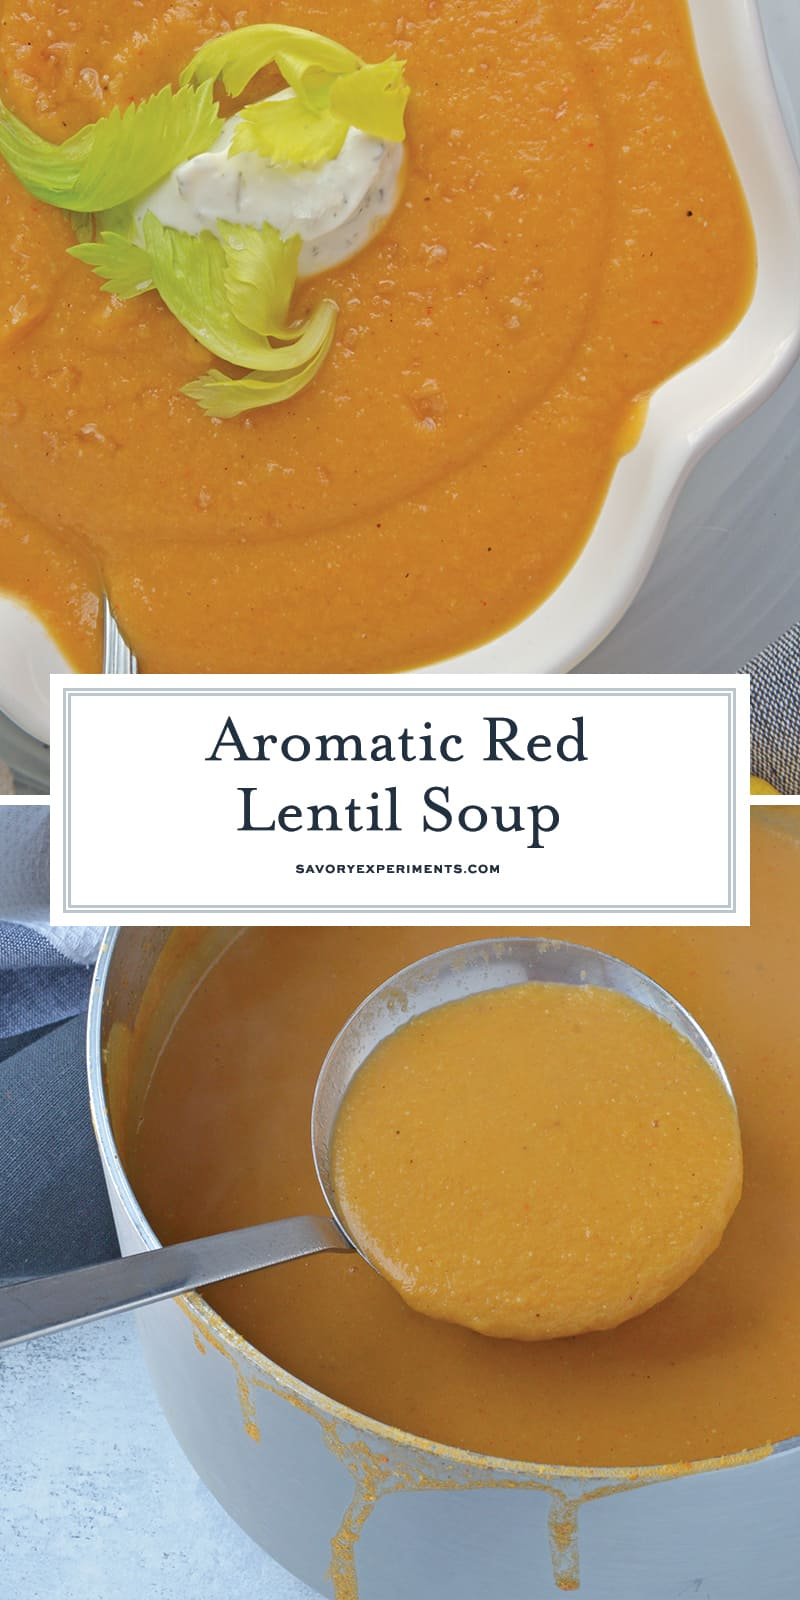 Red Lentil Soup is the best comfort food for a cold or rainy day. Packed full of vegetables and spices, this easy soup recipe is hearty enough for a meal. #lentilsouprecipes #redlentilrecipes www.savoryexperiments.com